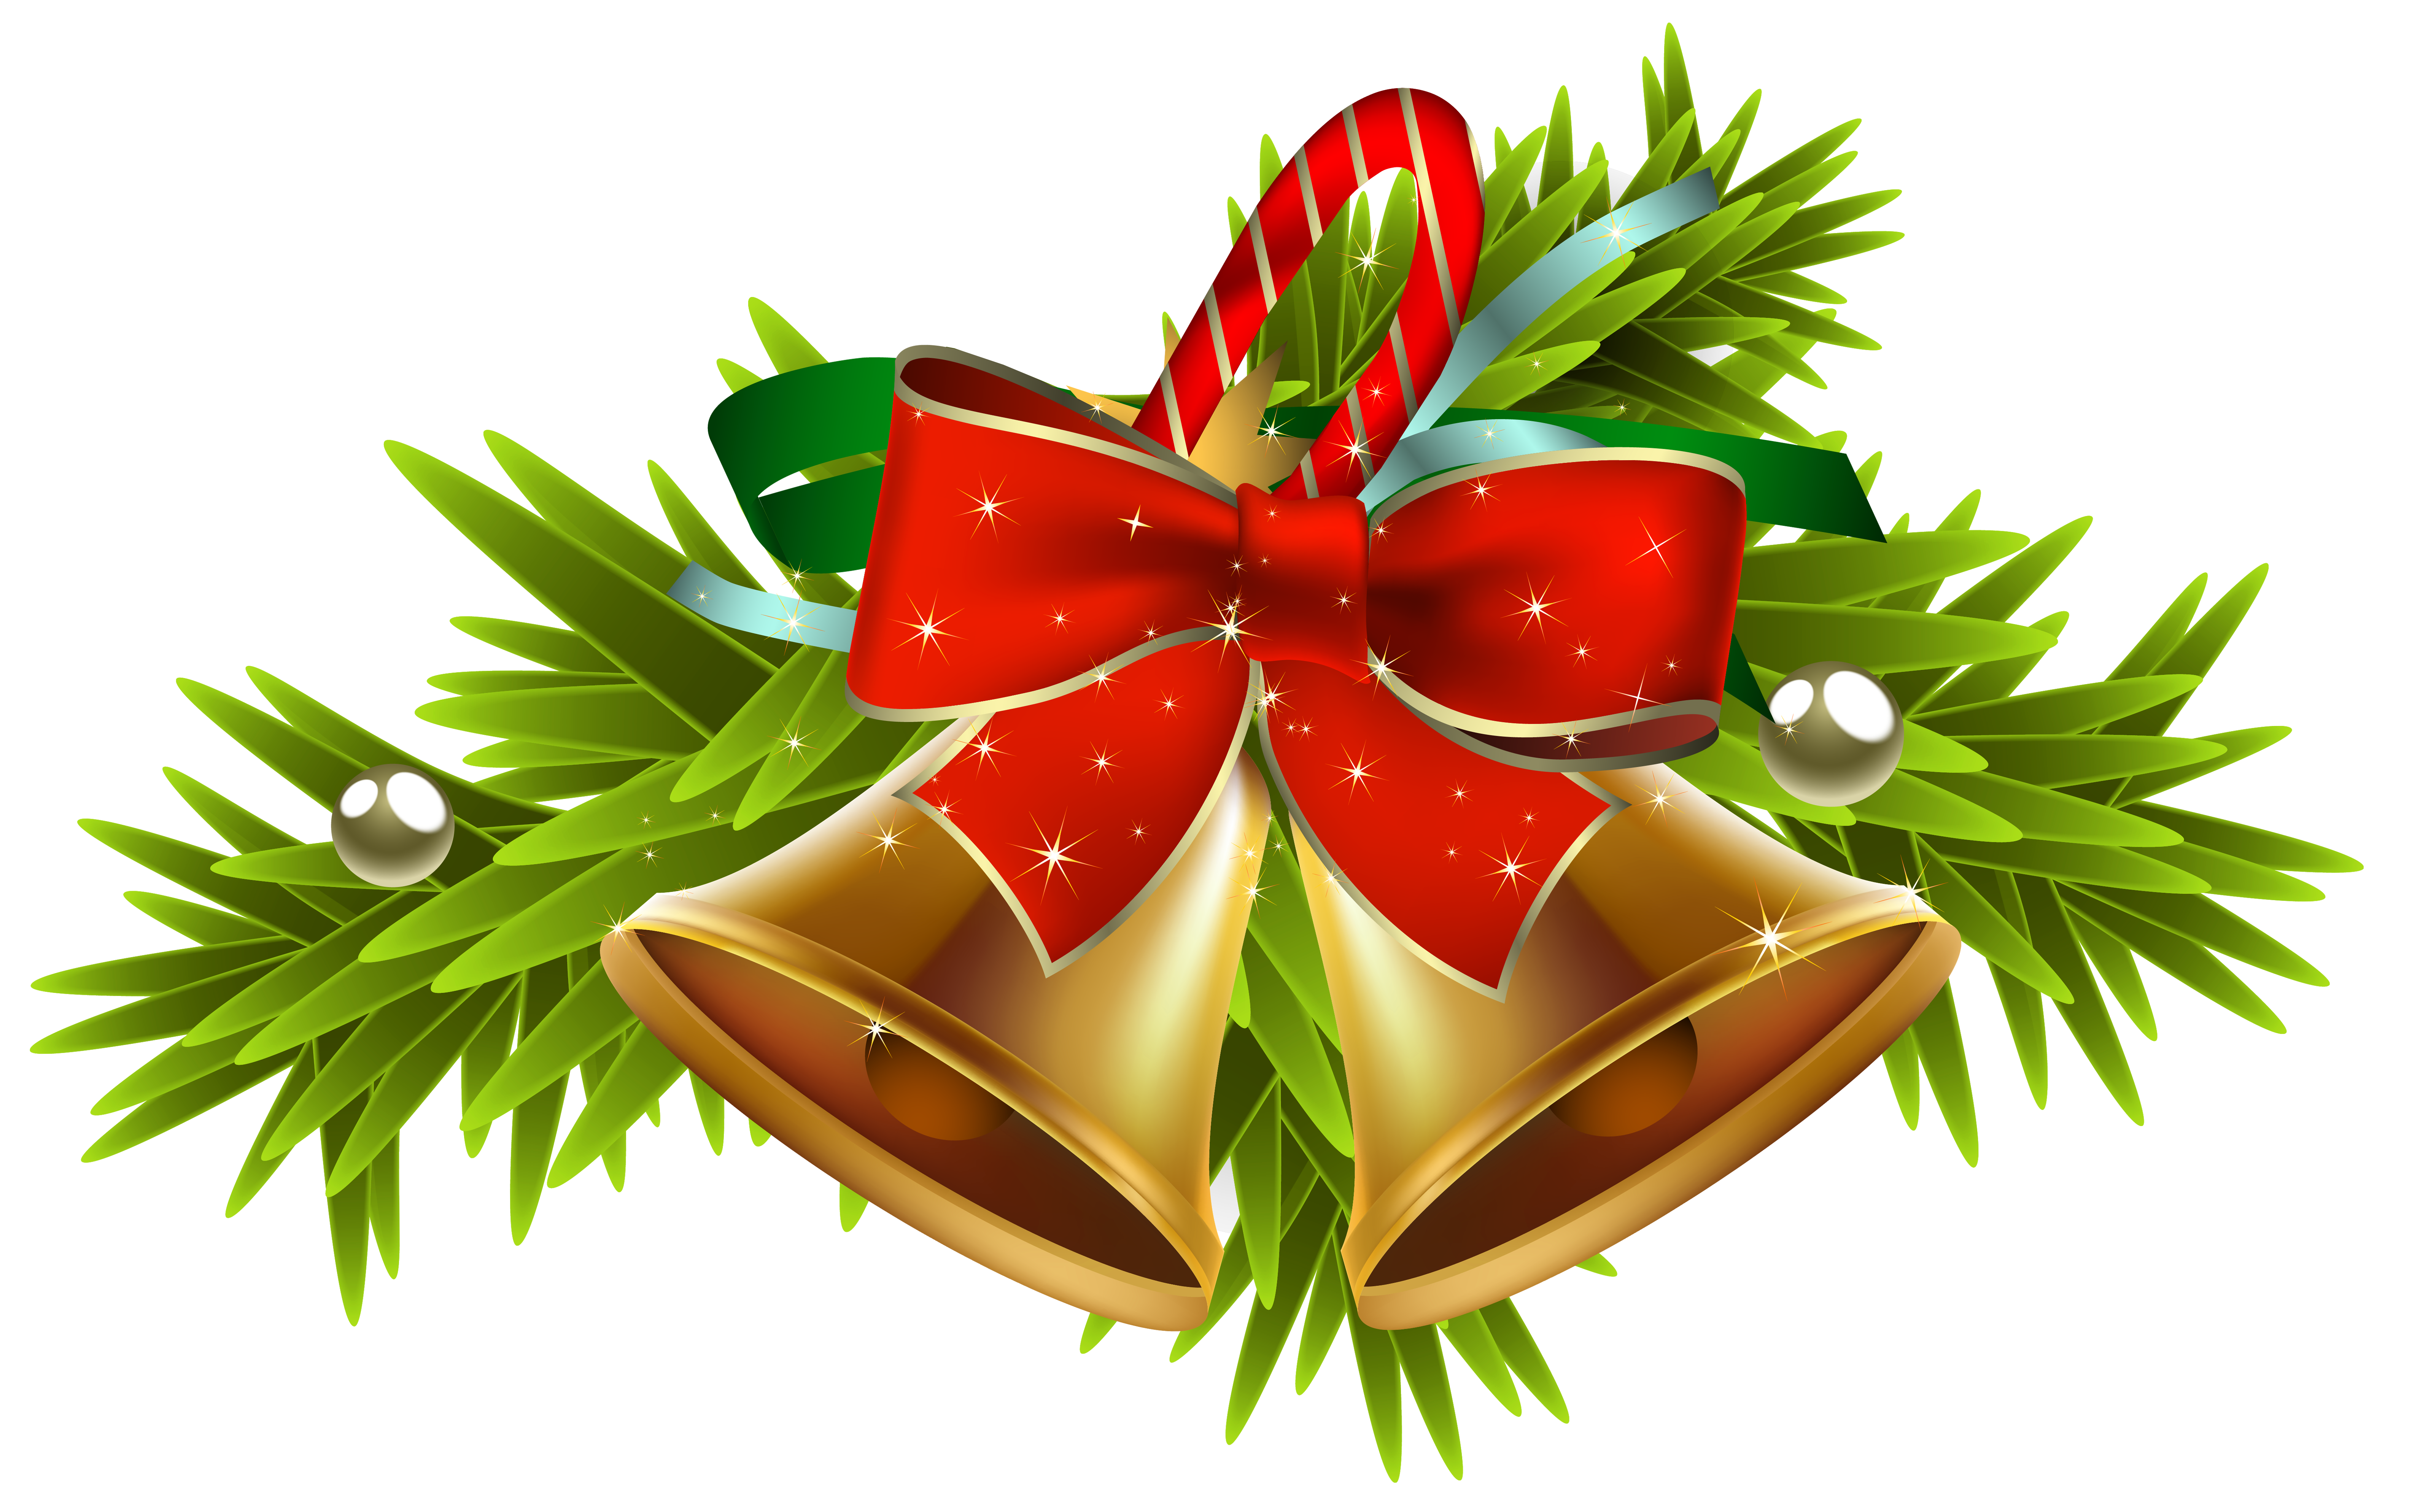 Christmas Golden Bells Decor PNG Clipart Image Gallery